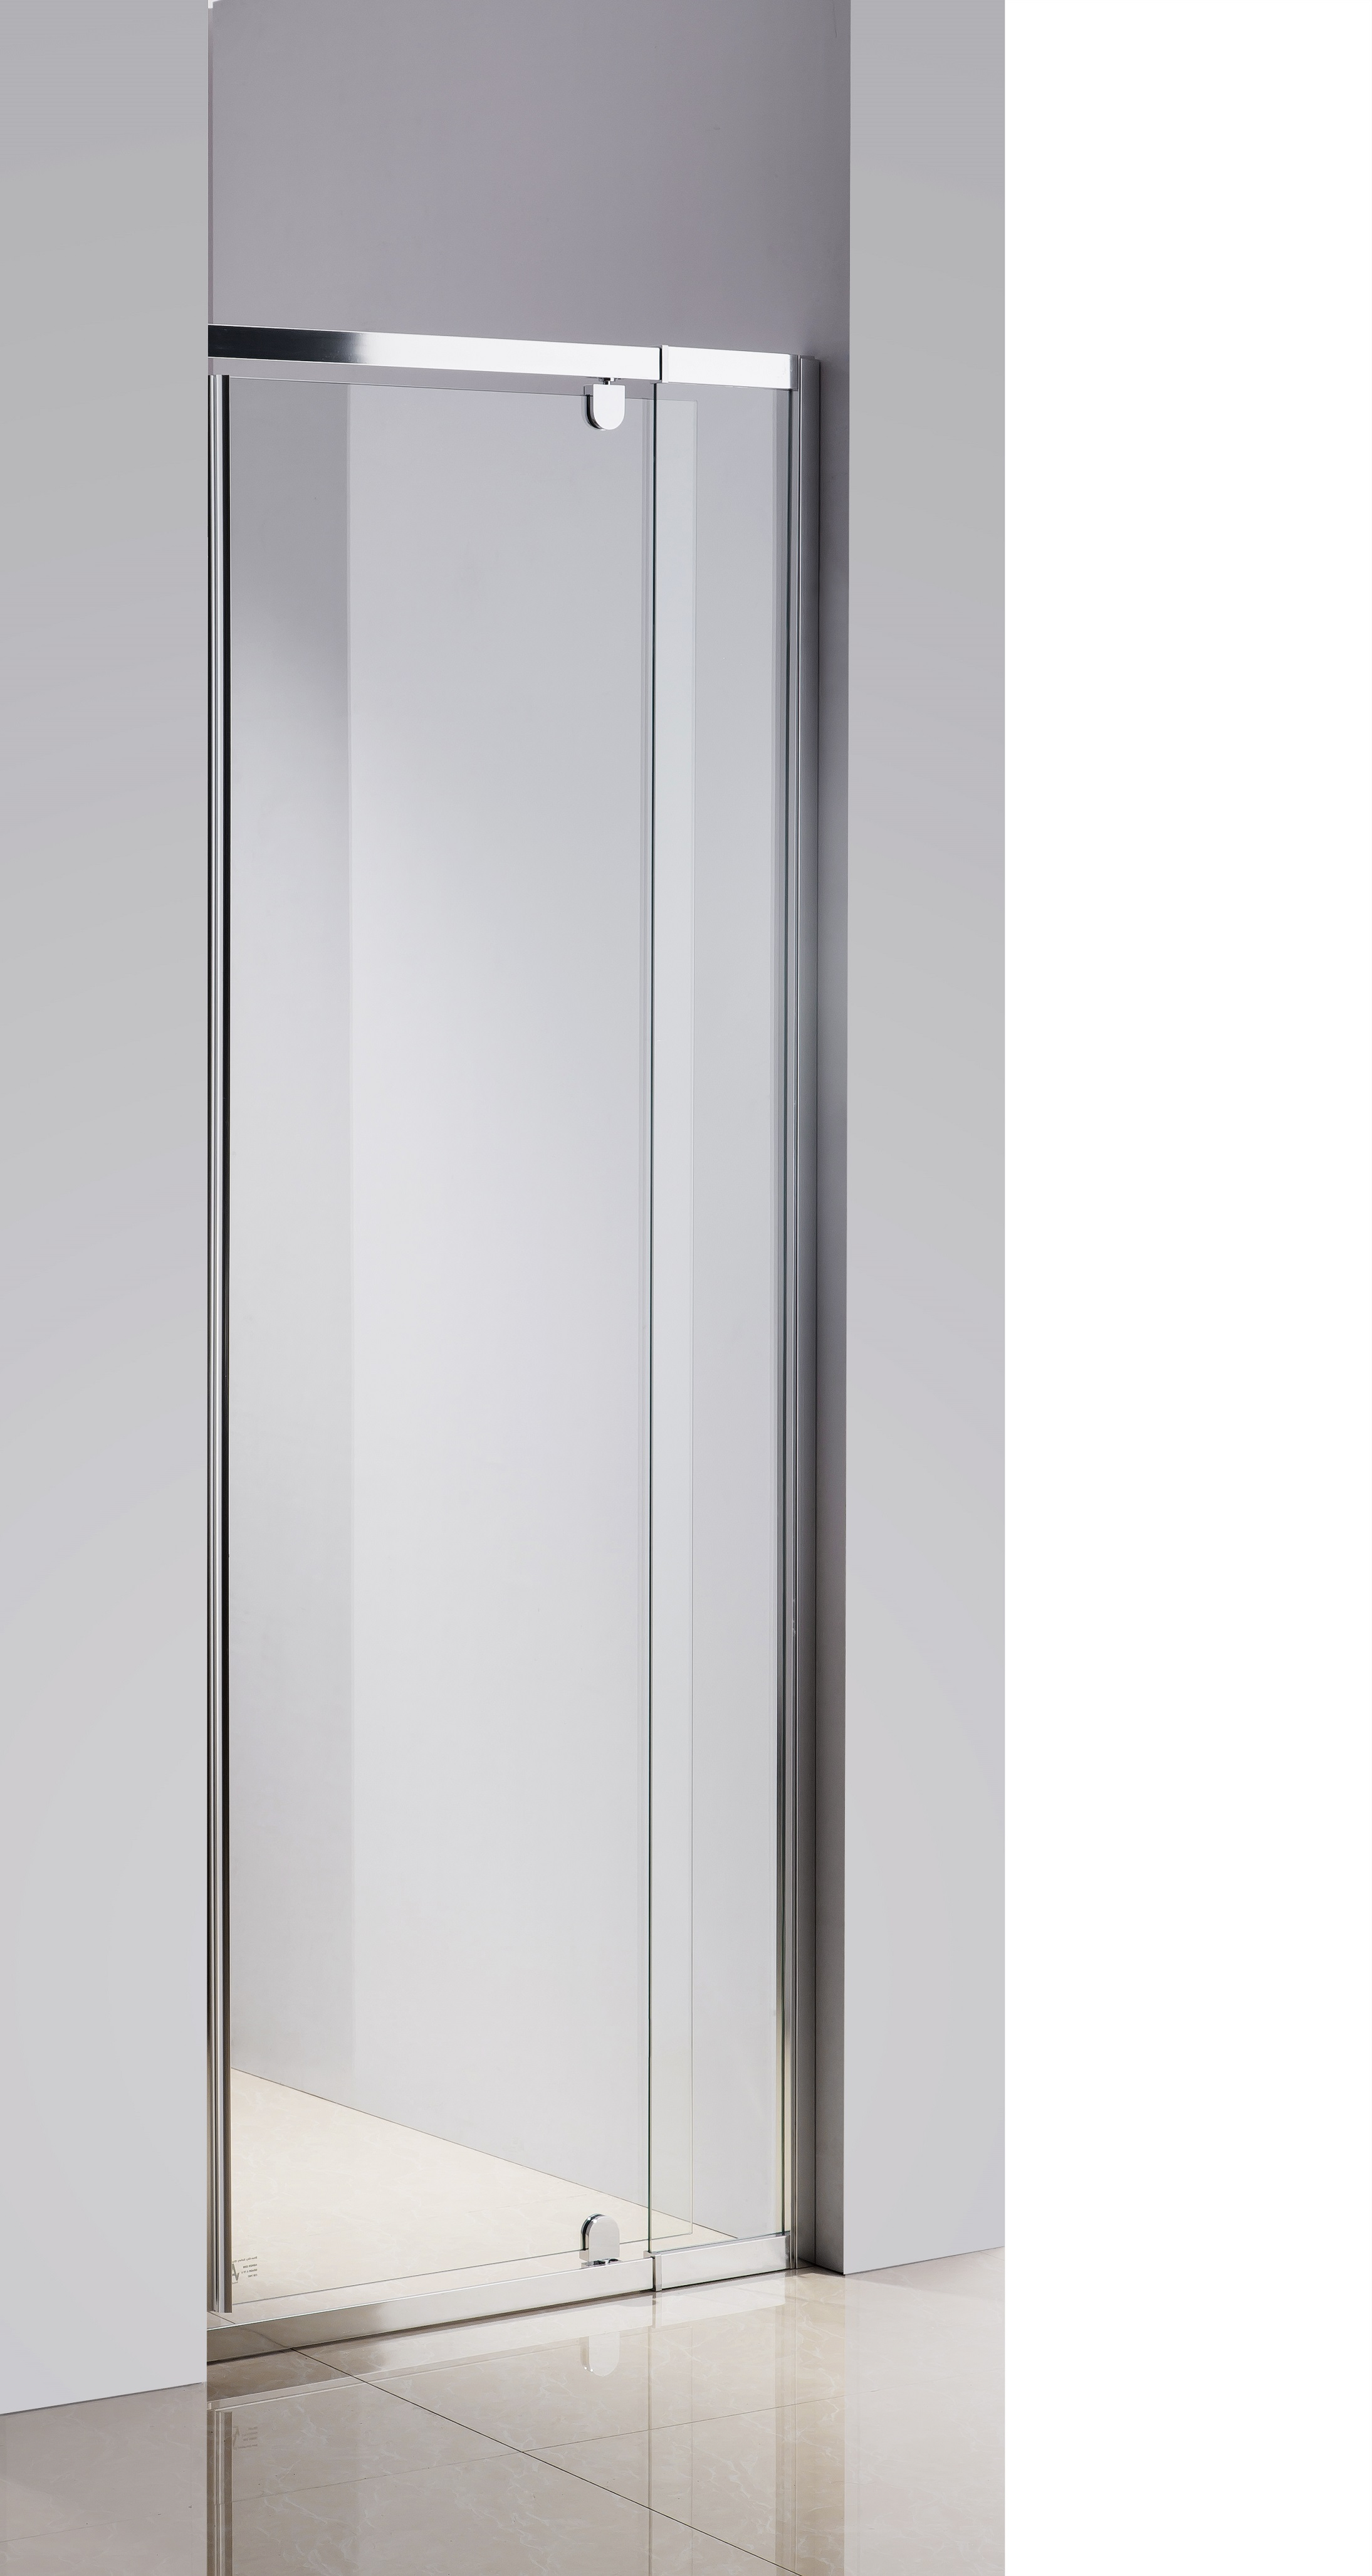 720-800 Finger Pull Wall to Wall Shower Screen By Della Francesca